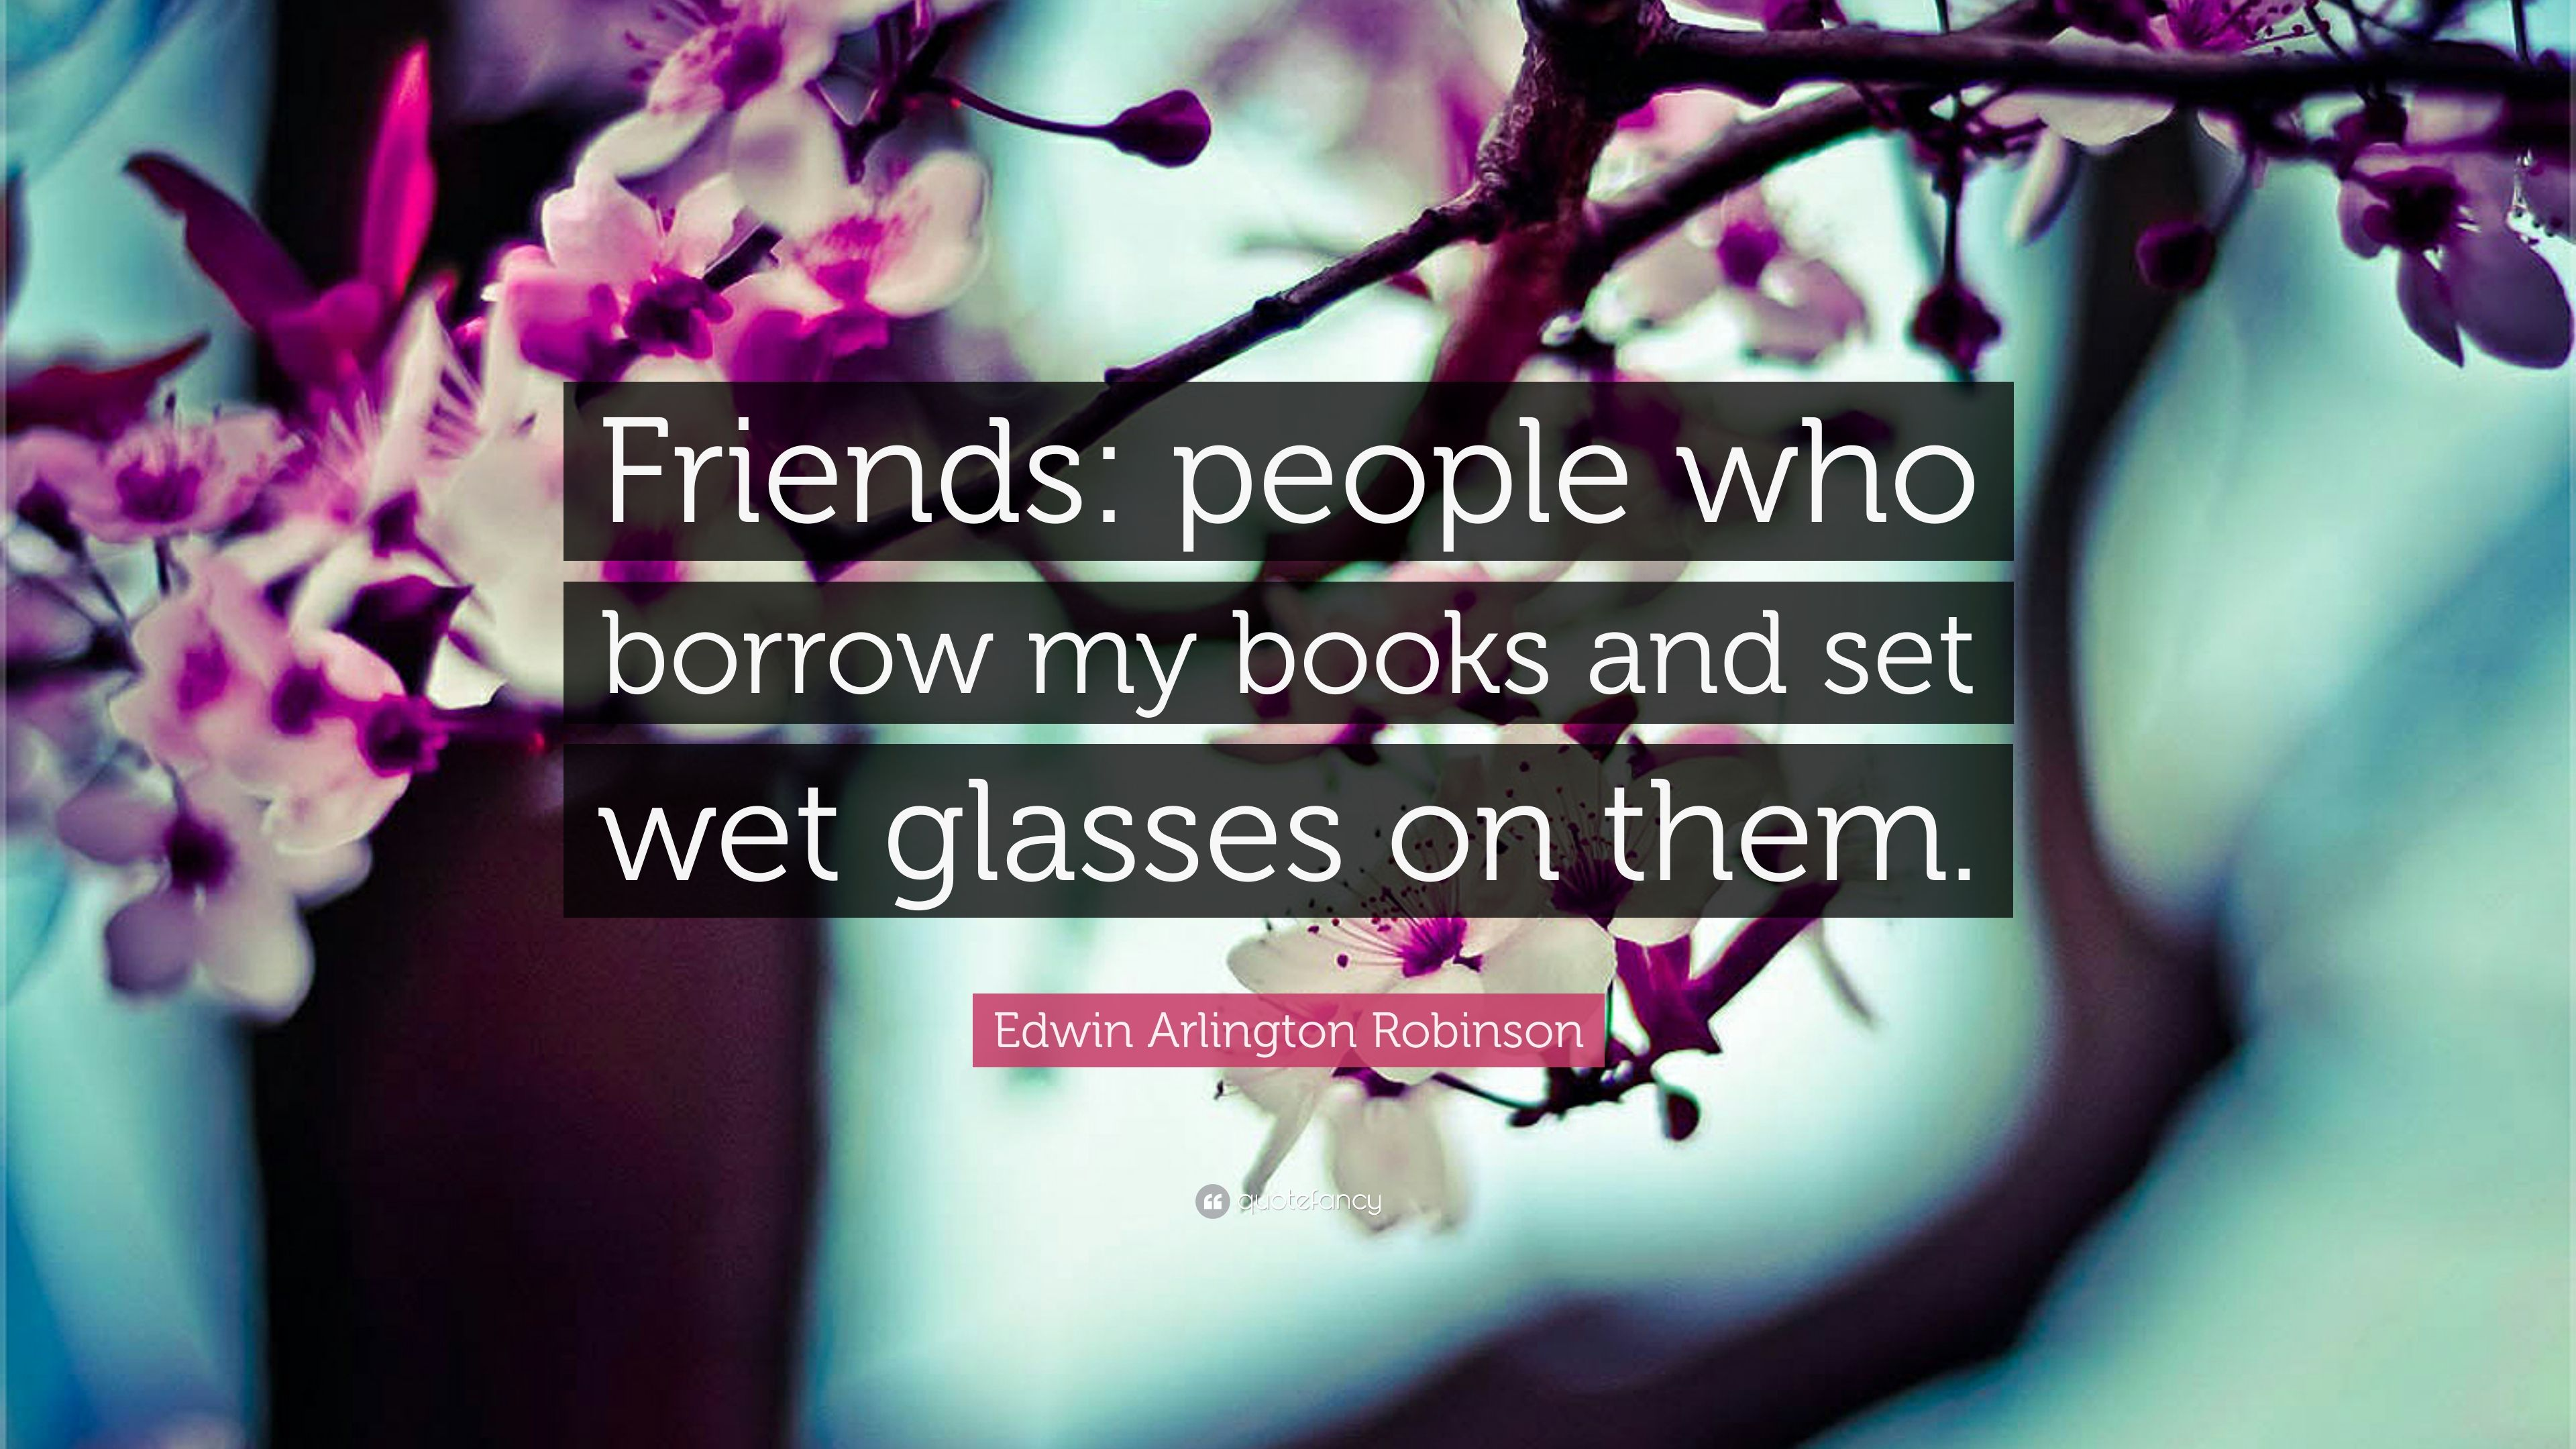 Friends: people who borrow my books and set wet glasses on them.